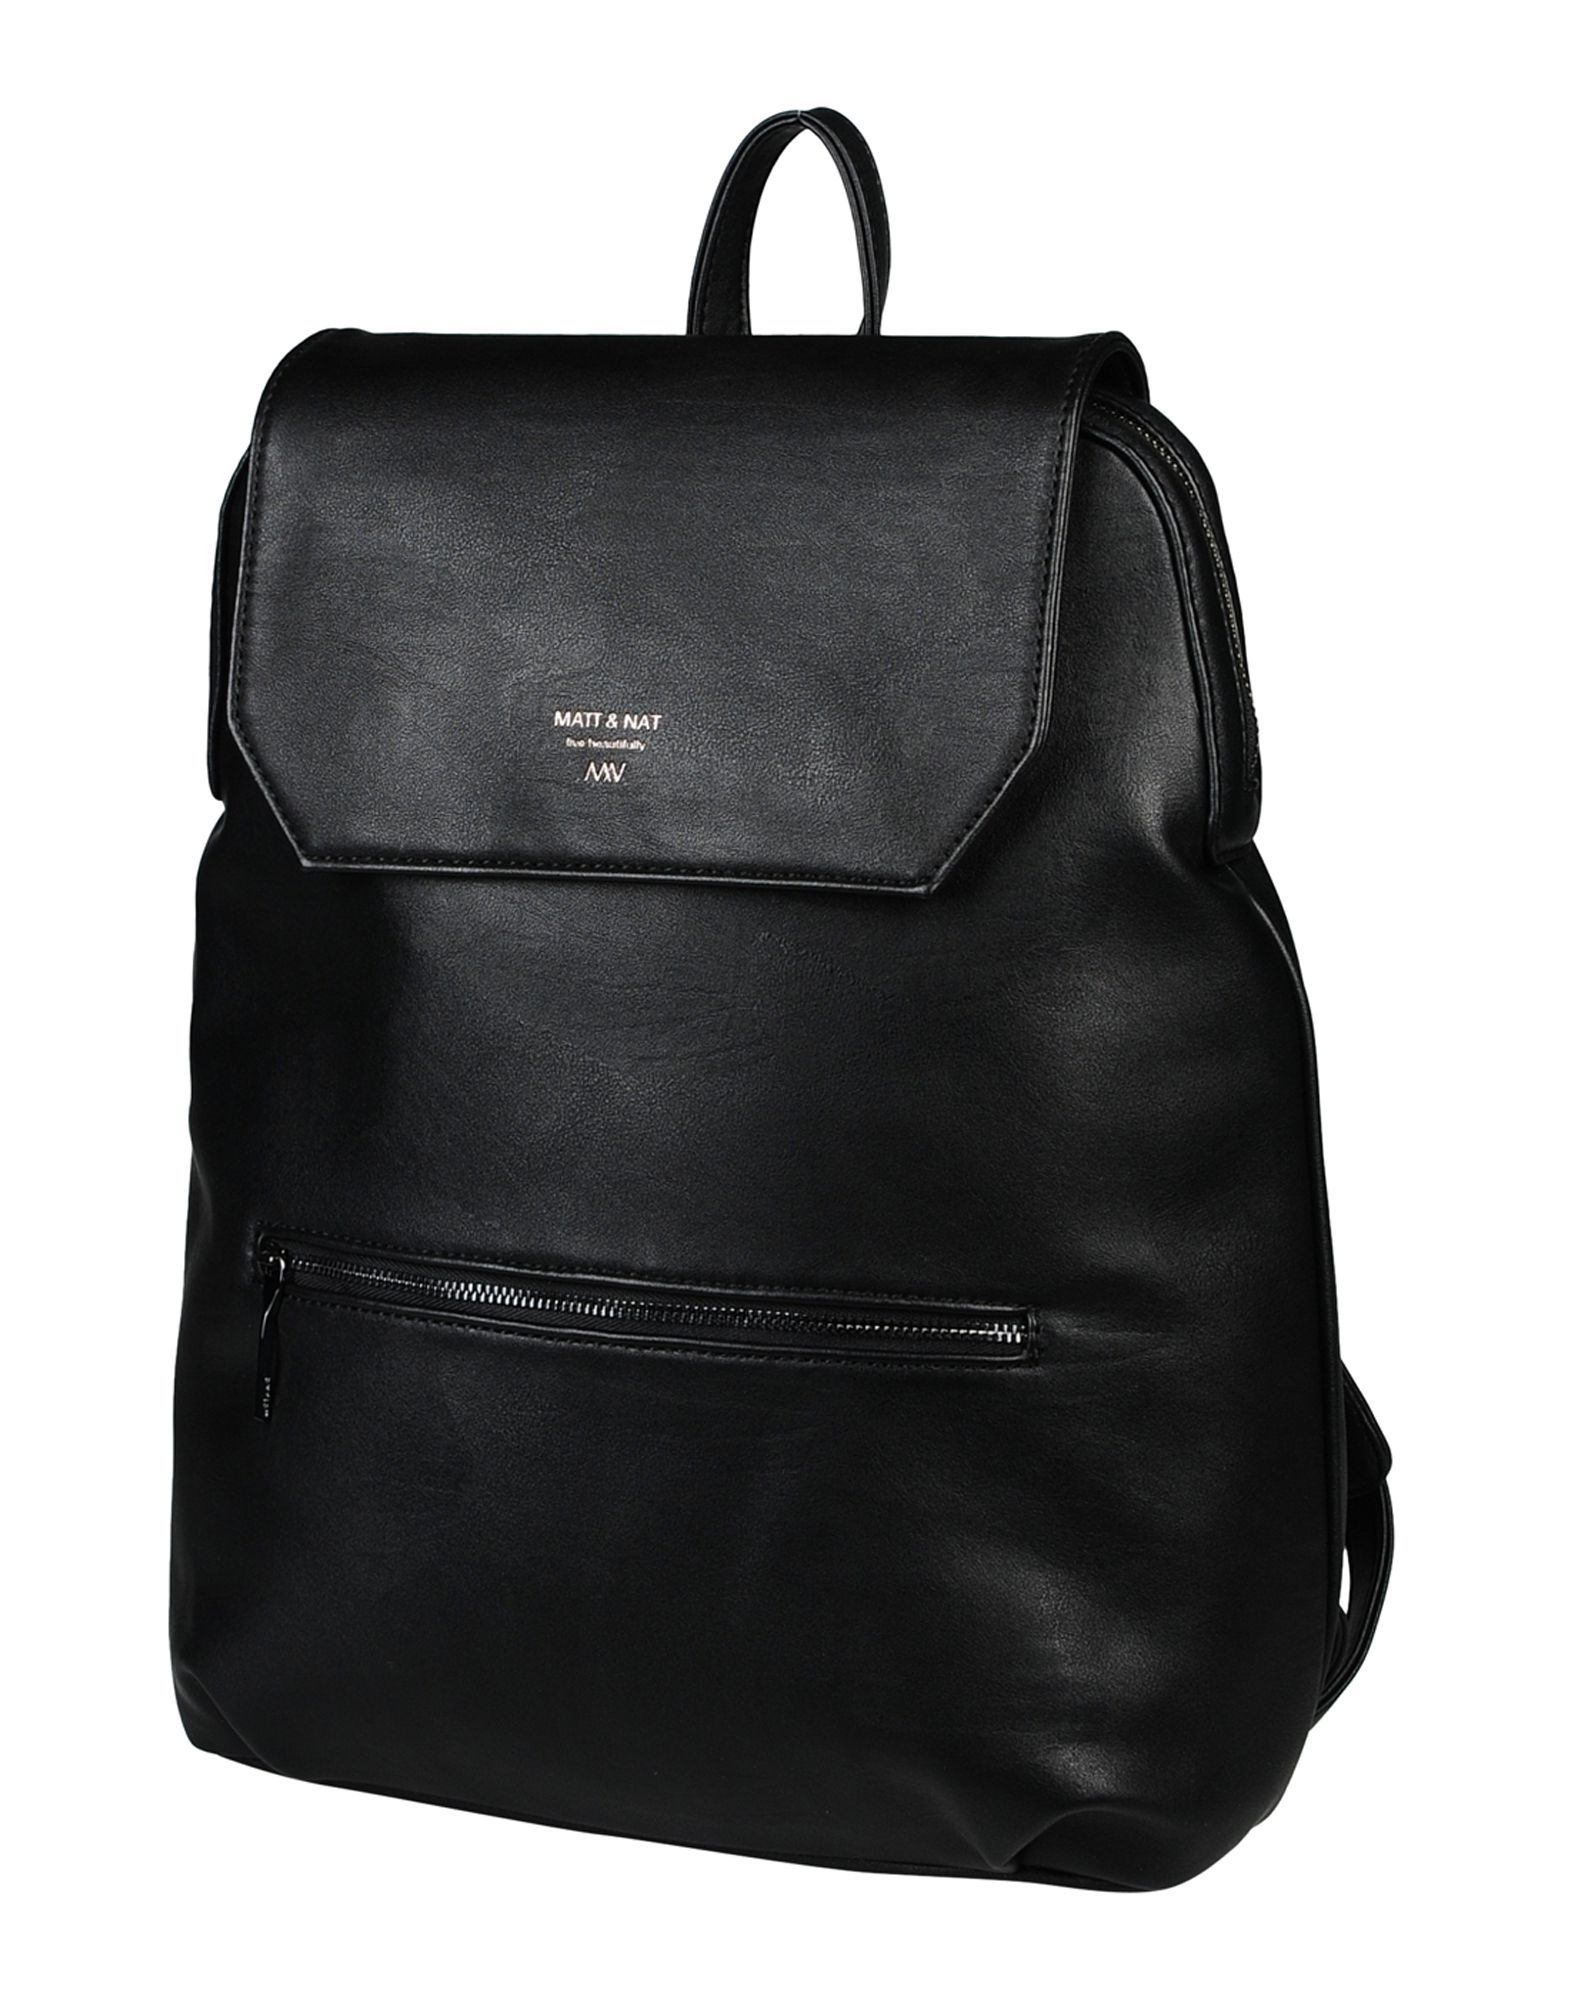 Diesel HANDBAGS - Backpacks & Fanny packs su YOOX.COM r9wJJ8hx